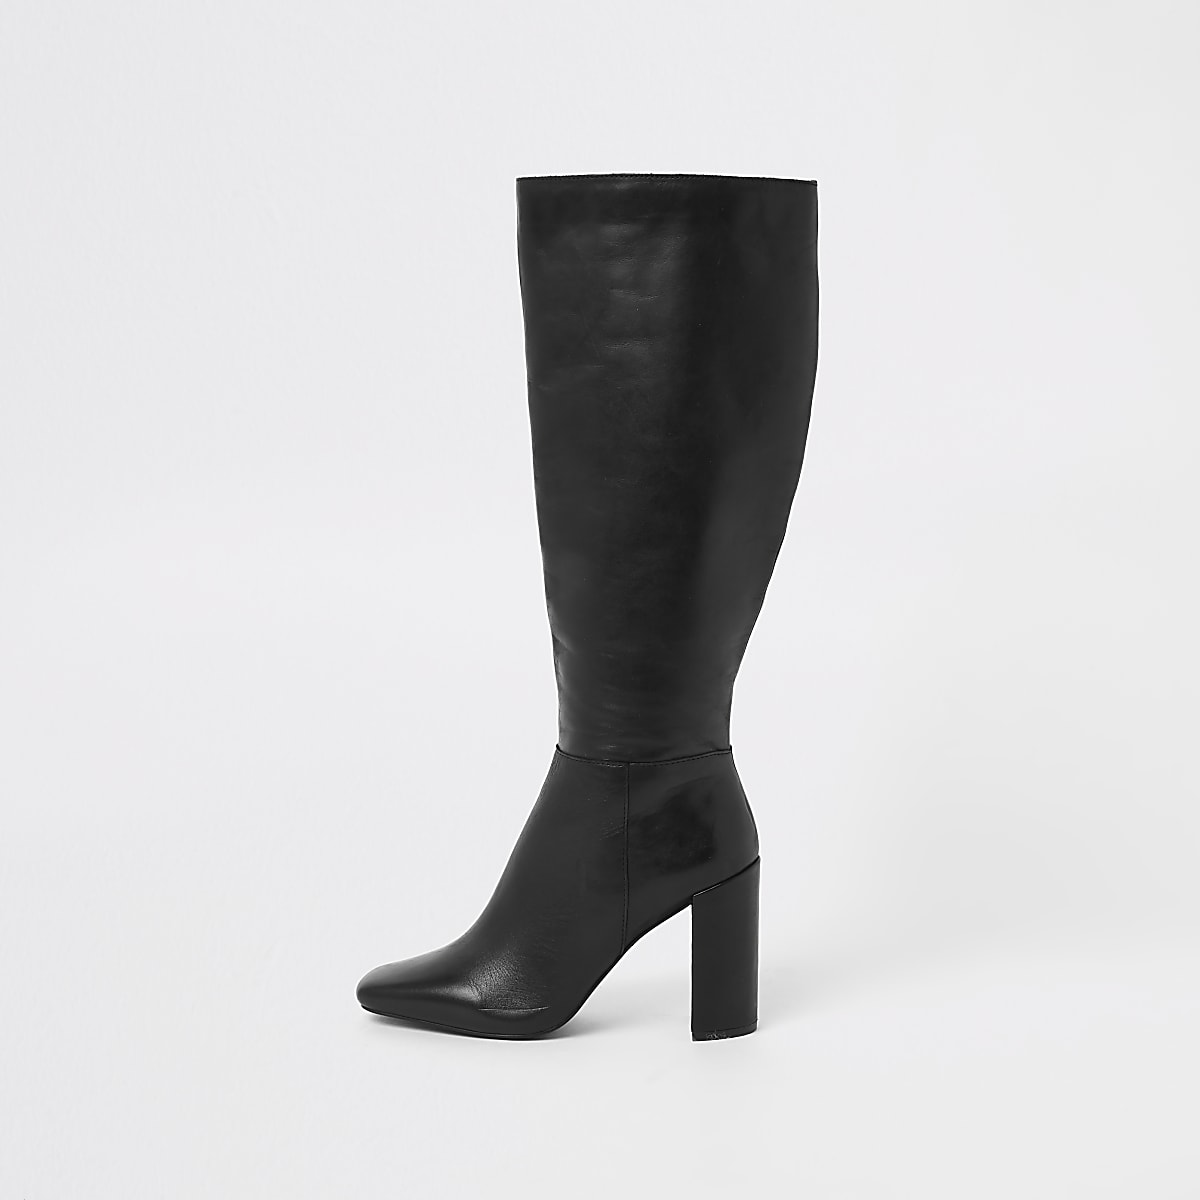 c530f9905fe Black leather square toe knee high boots - Boots - Shoes   Boots - women